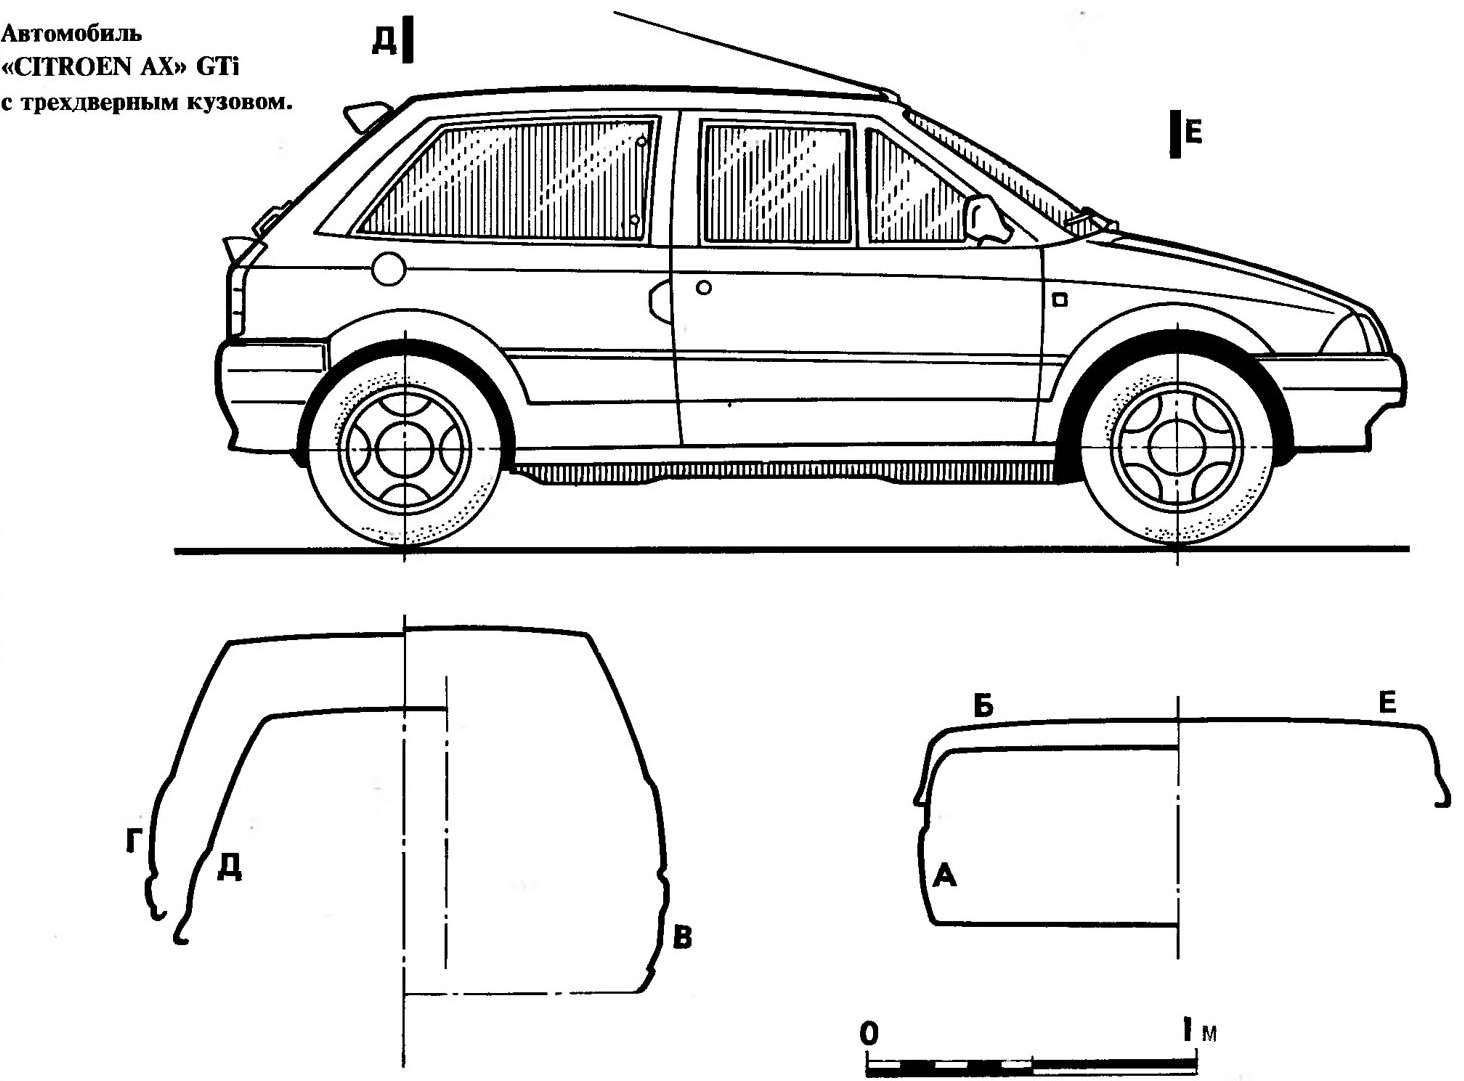 Citroen AX 14 GTi: Photos, Reviews, News, Specs, Buy car